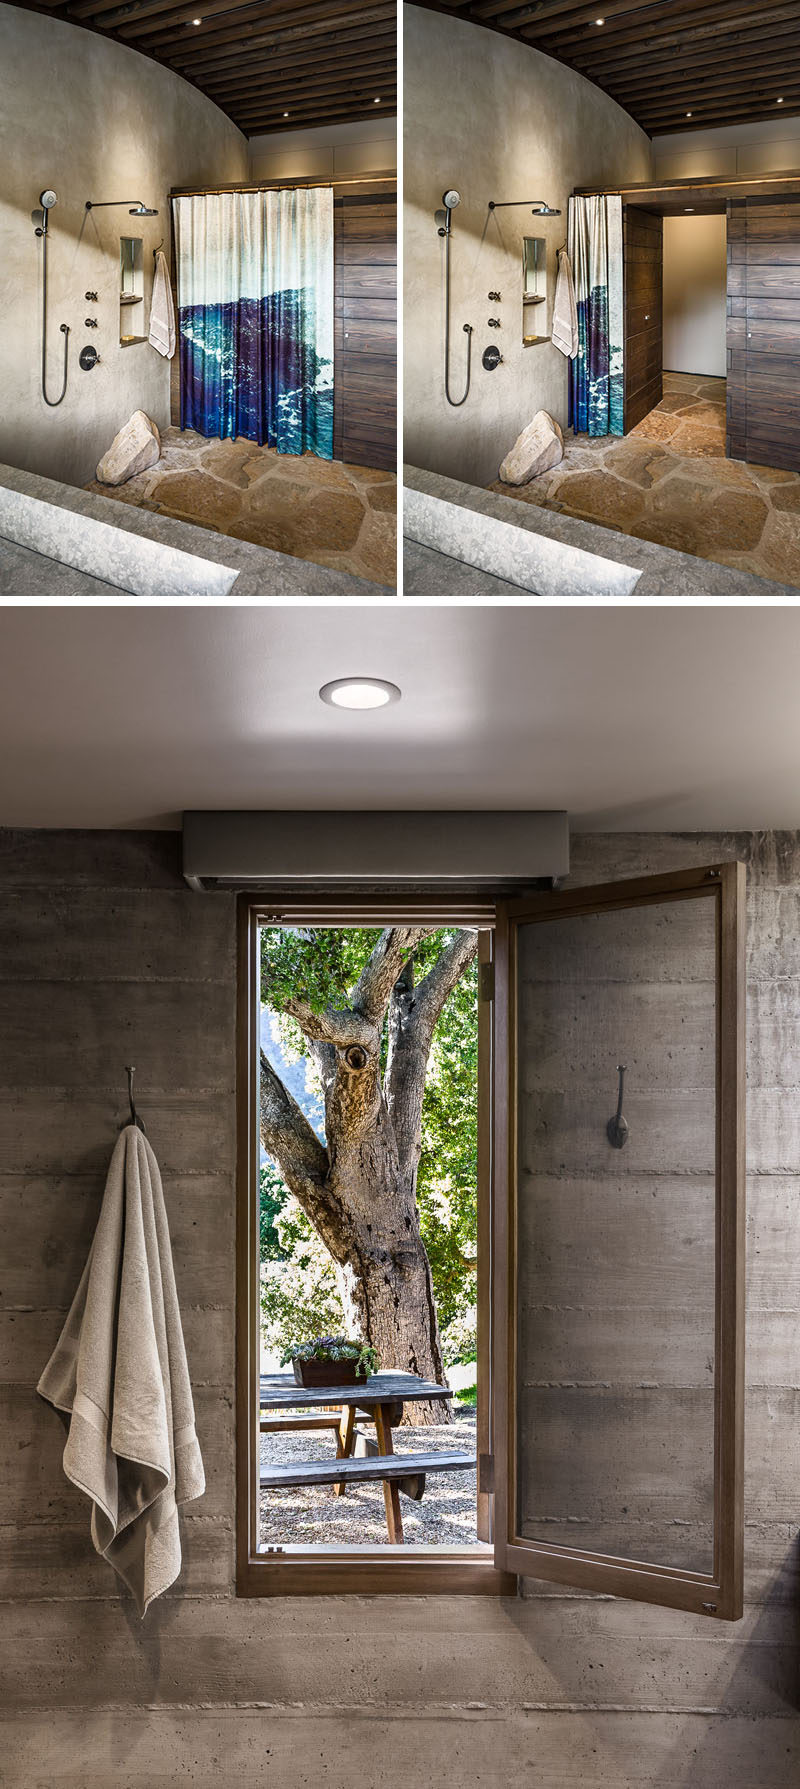 This rustic modern master bathroom, set up in an open 'wet room' plan, has horizontal wood sections built from exposed kiln-dried framing lumber, that hide the water closet and clothes closets. The shower curtain is made from a salvaged waterproof banner ad that pictures the owner's son surfing. #RusticModern #BathroomDesign